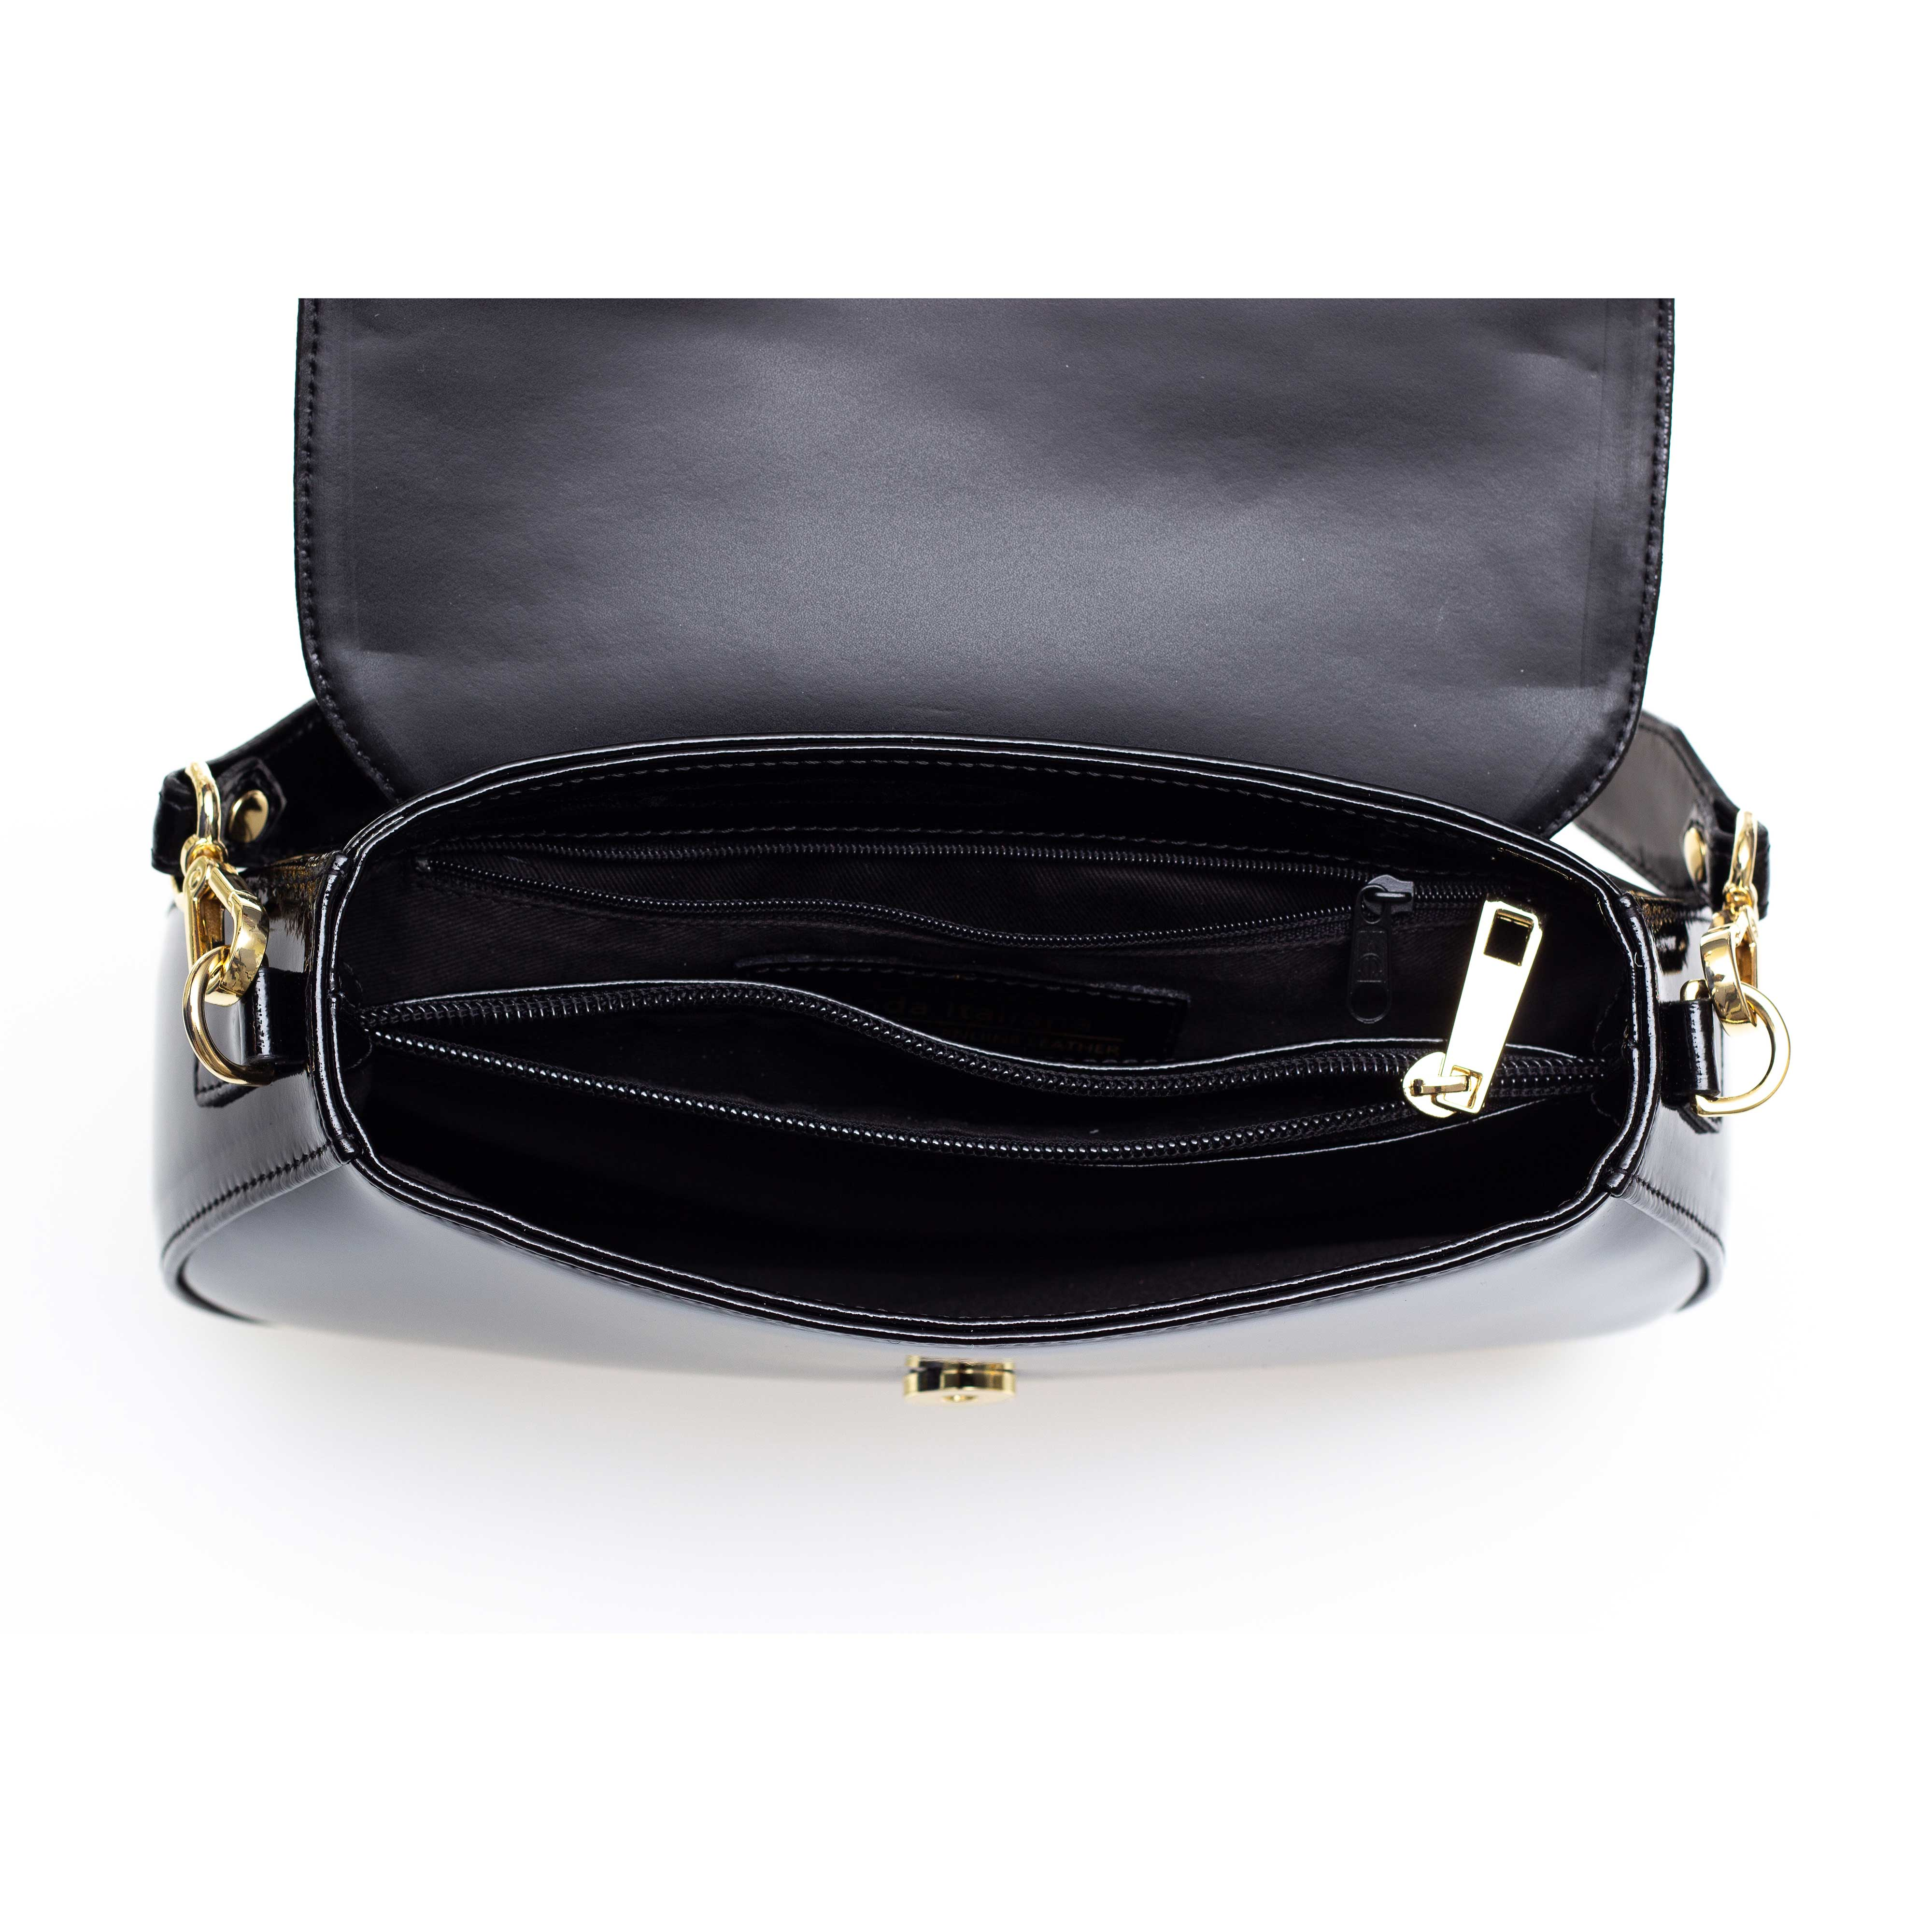 fc20d9ab5 Small Black Leather Crossbody Purse | Stanford Center for ...